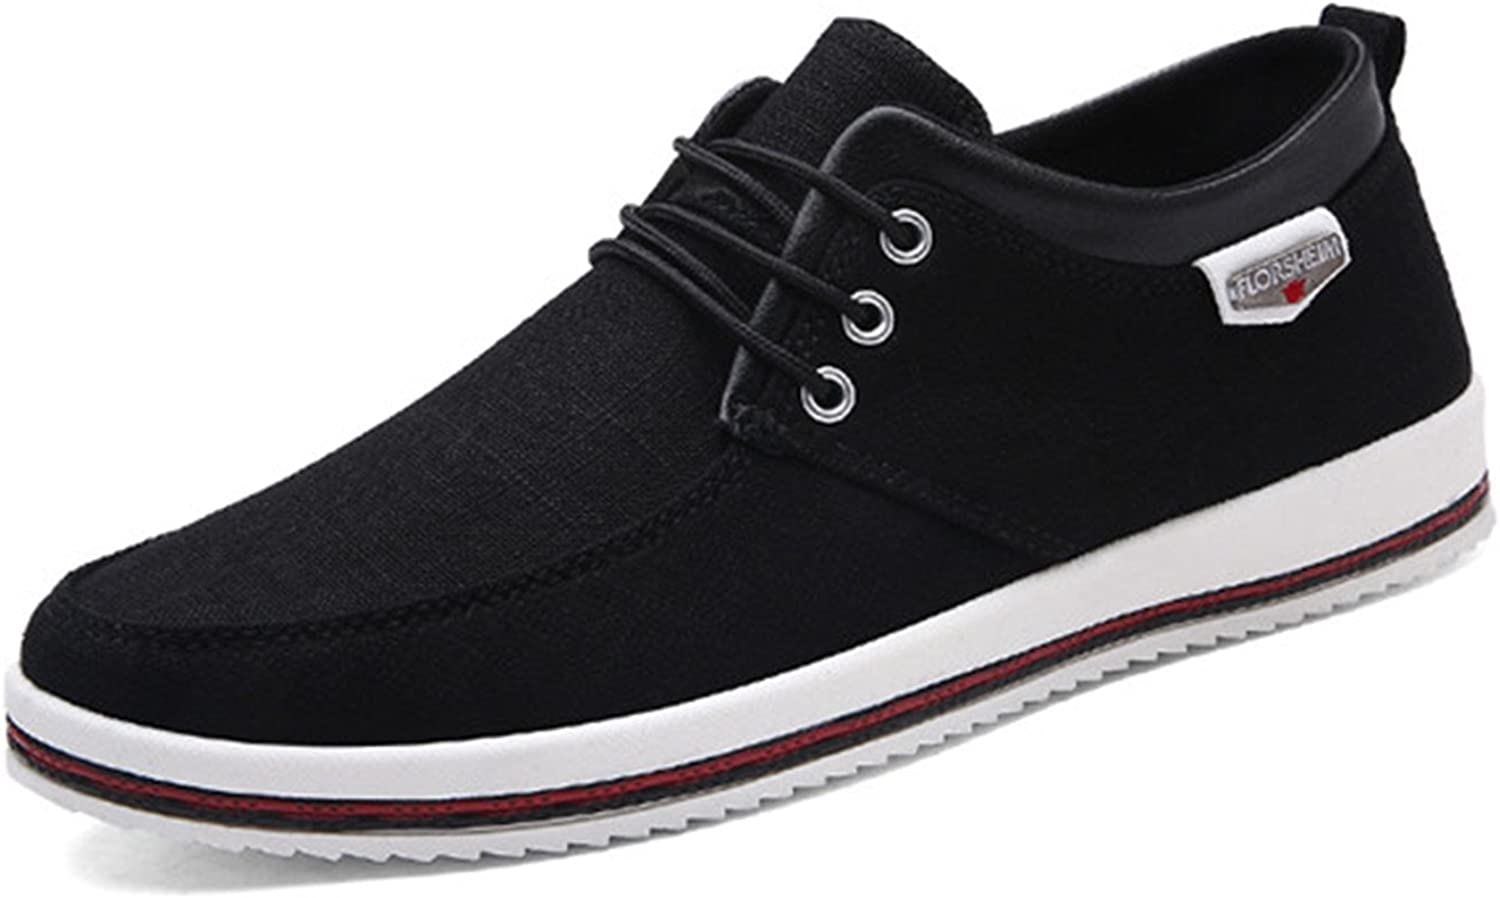 Gome-z Sneakers Mens Flats Casual Men Shoes Big Size Handmade Moccasins Shoes for Male